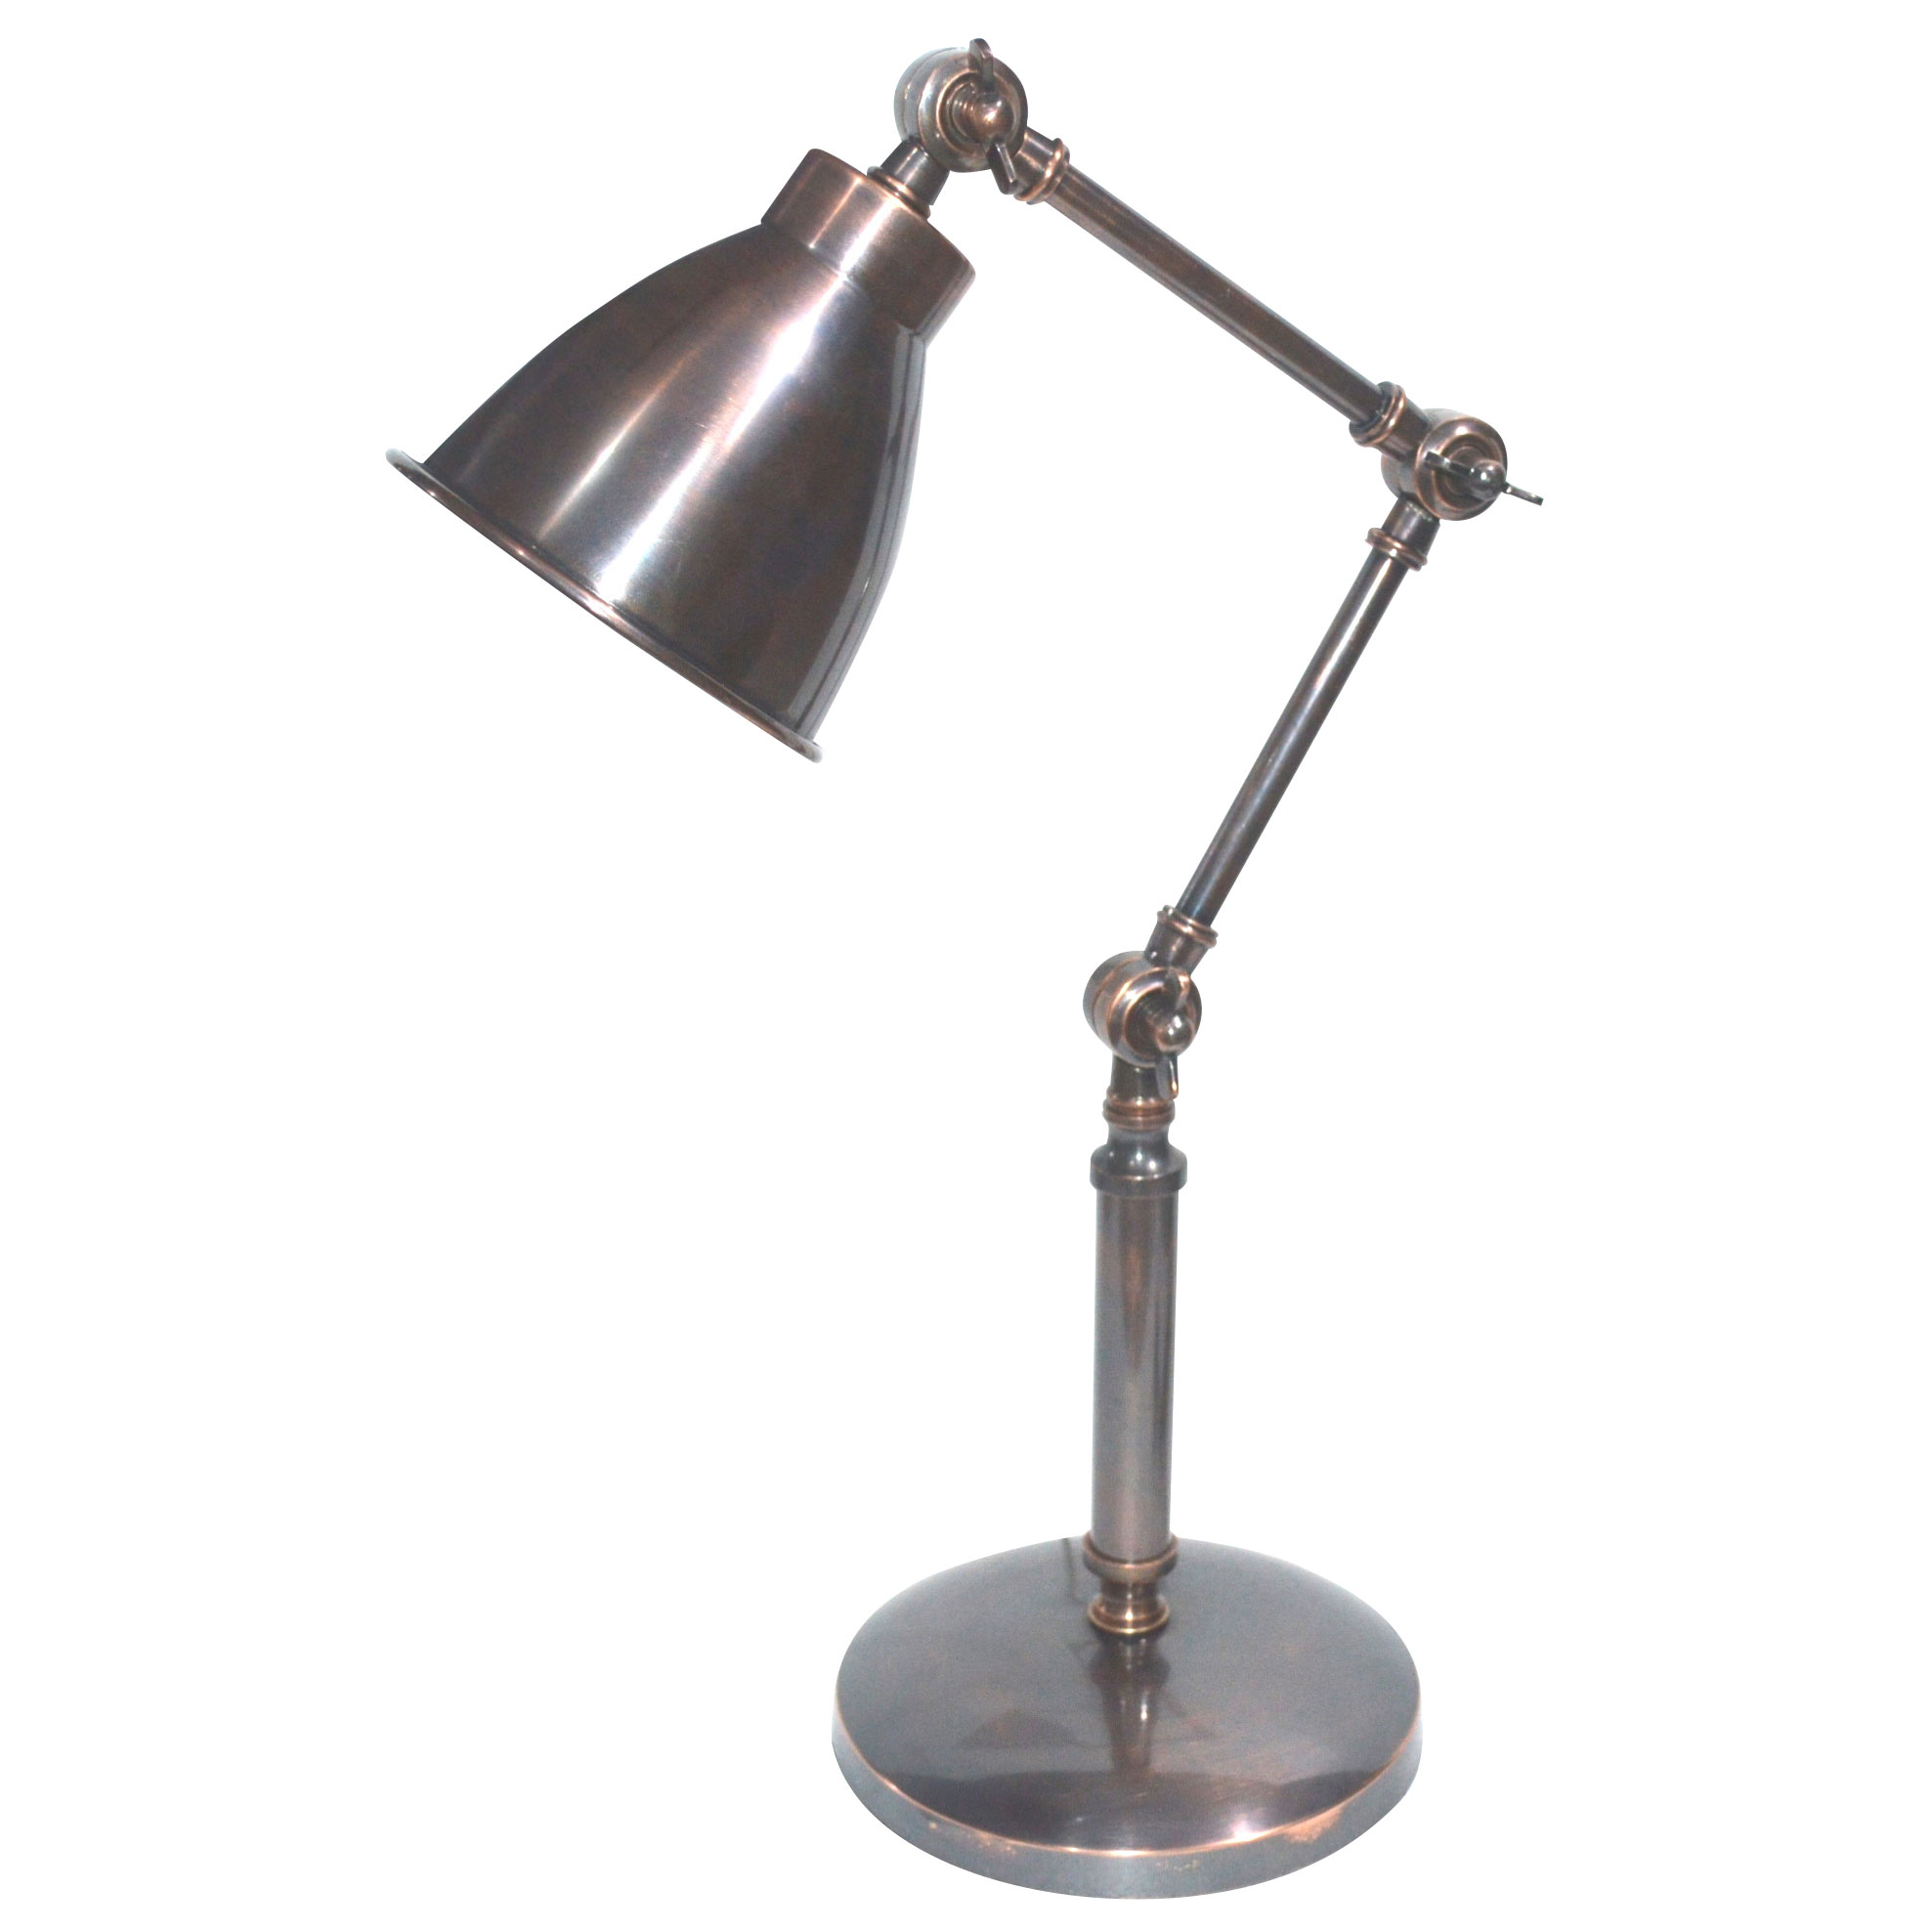 Adjustable Shakespeare Lamp Lamps Table Lamps Metal Lamps